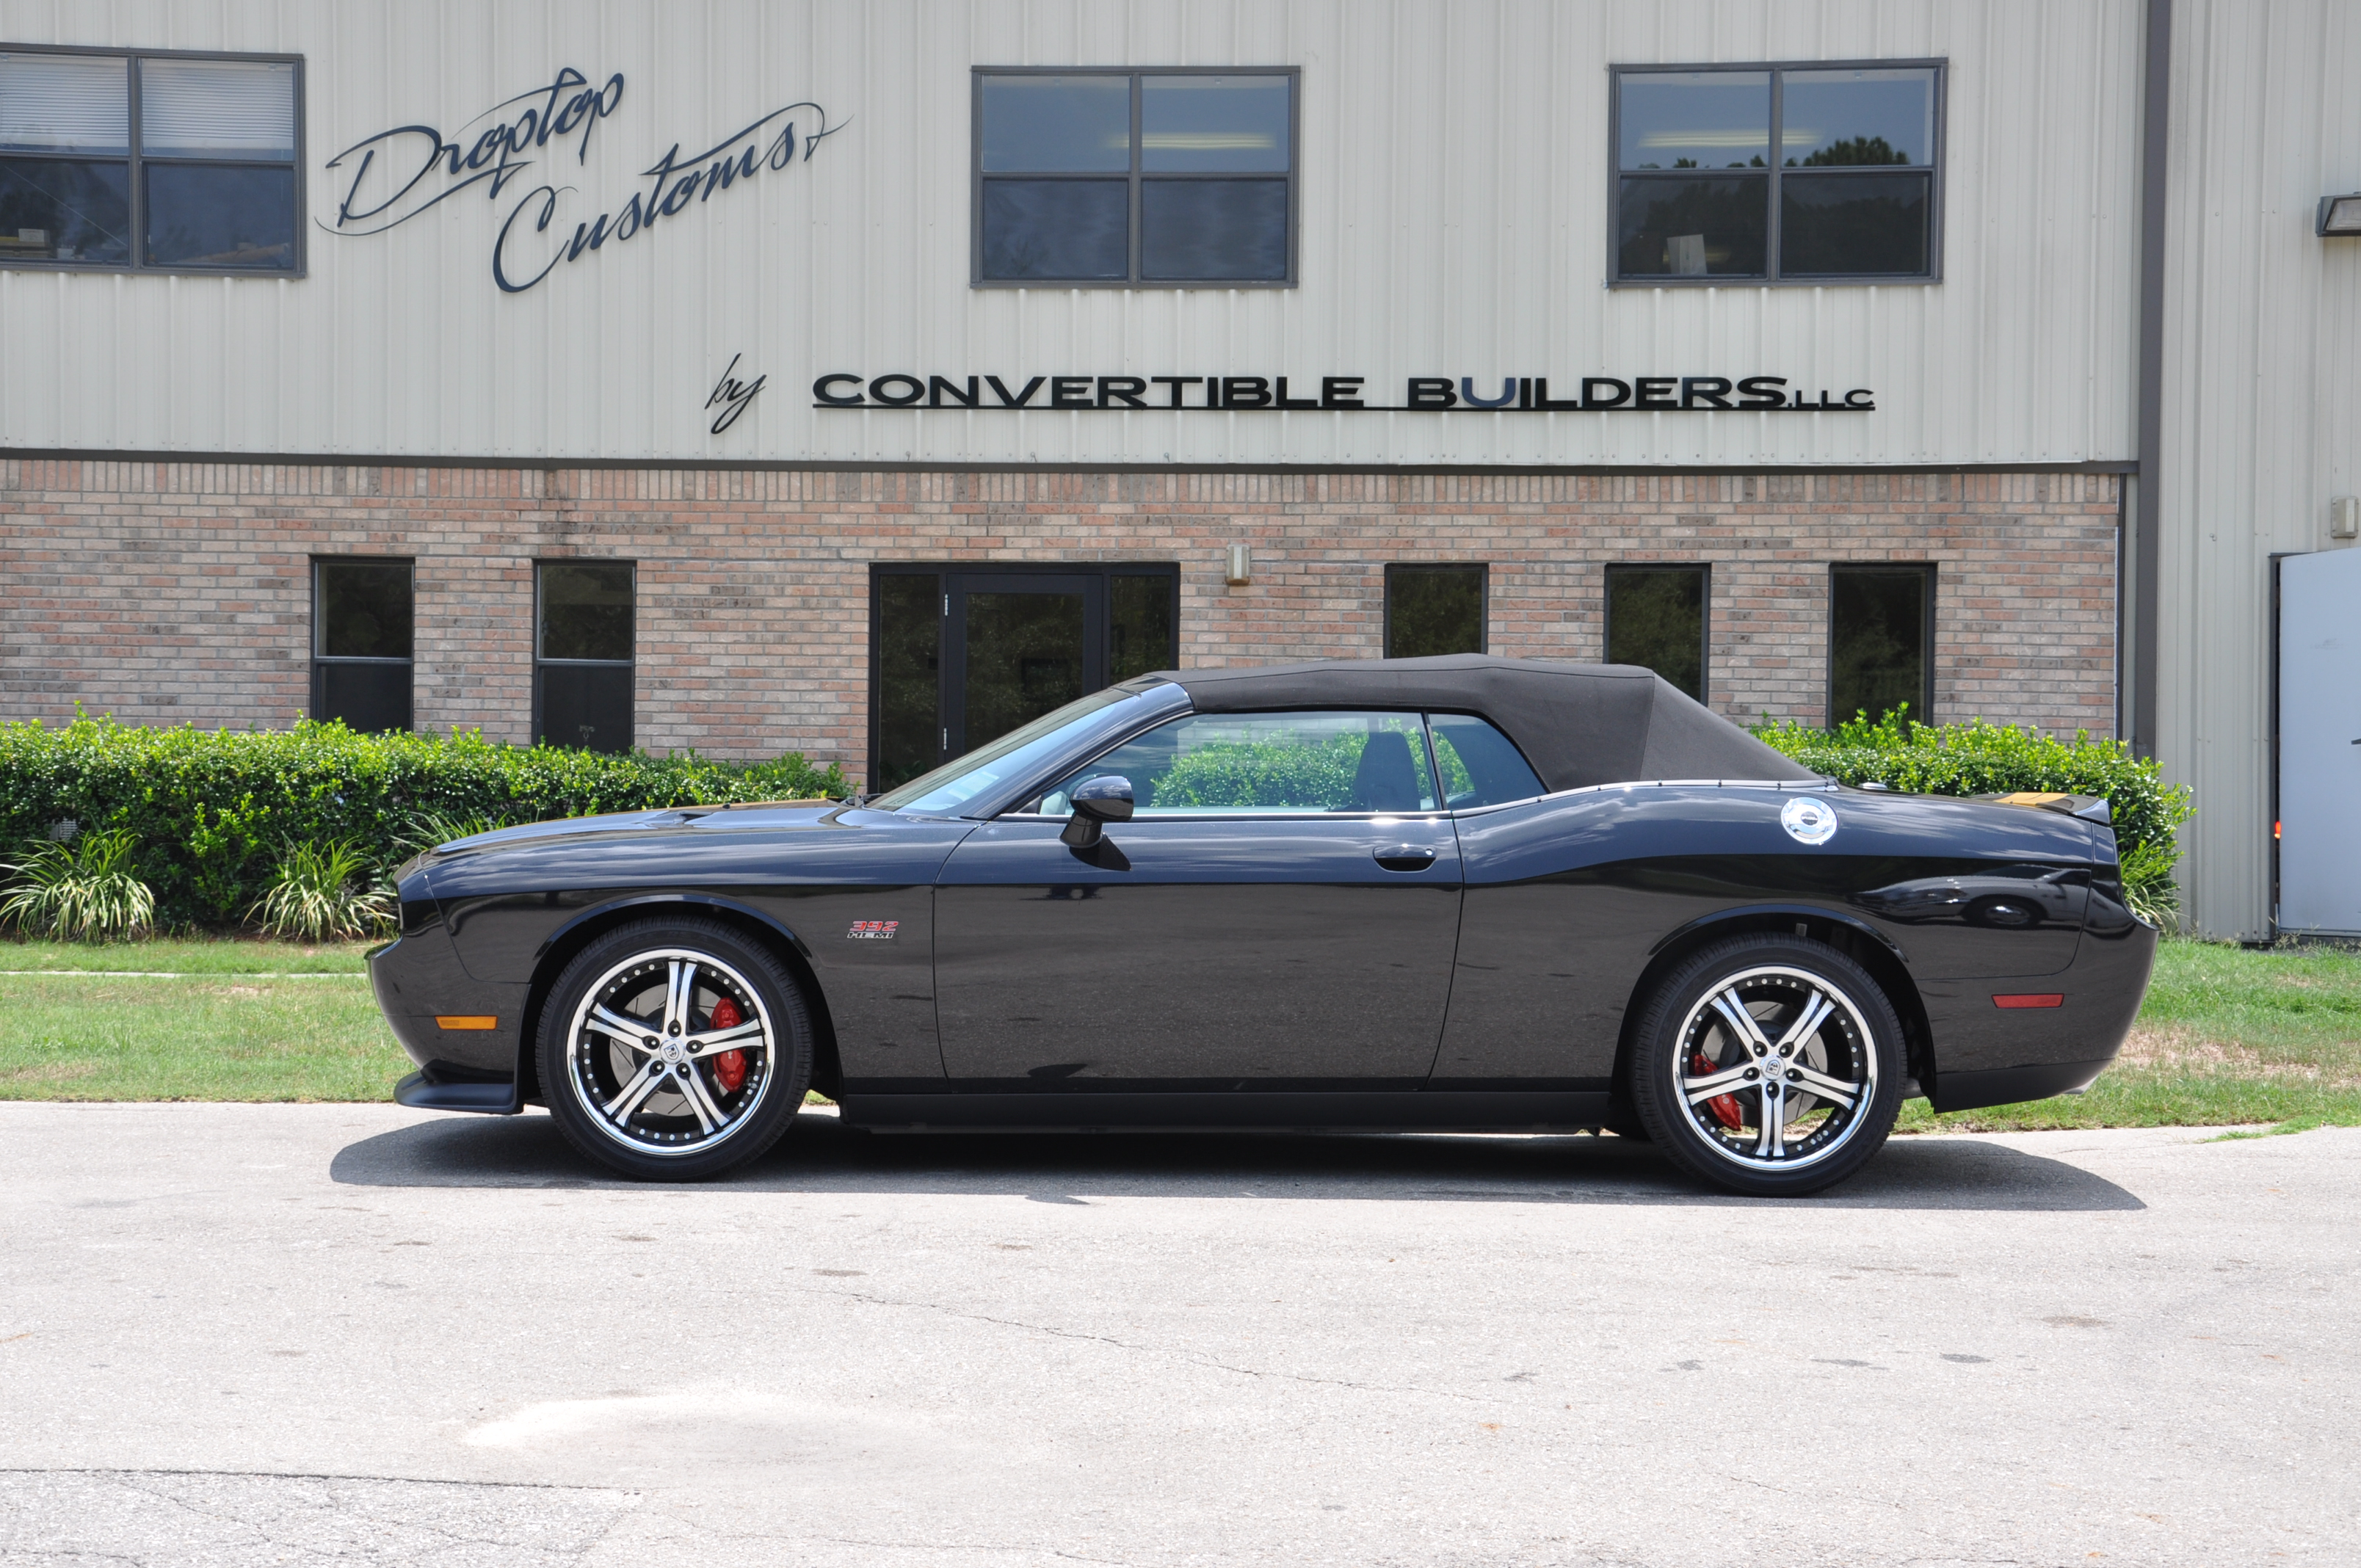 Black and Gold Challenger 7